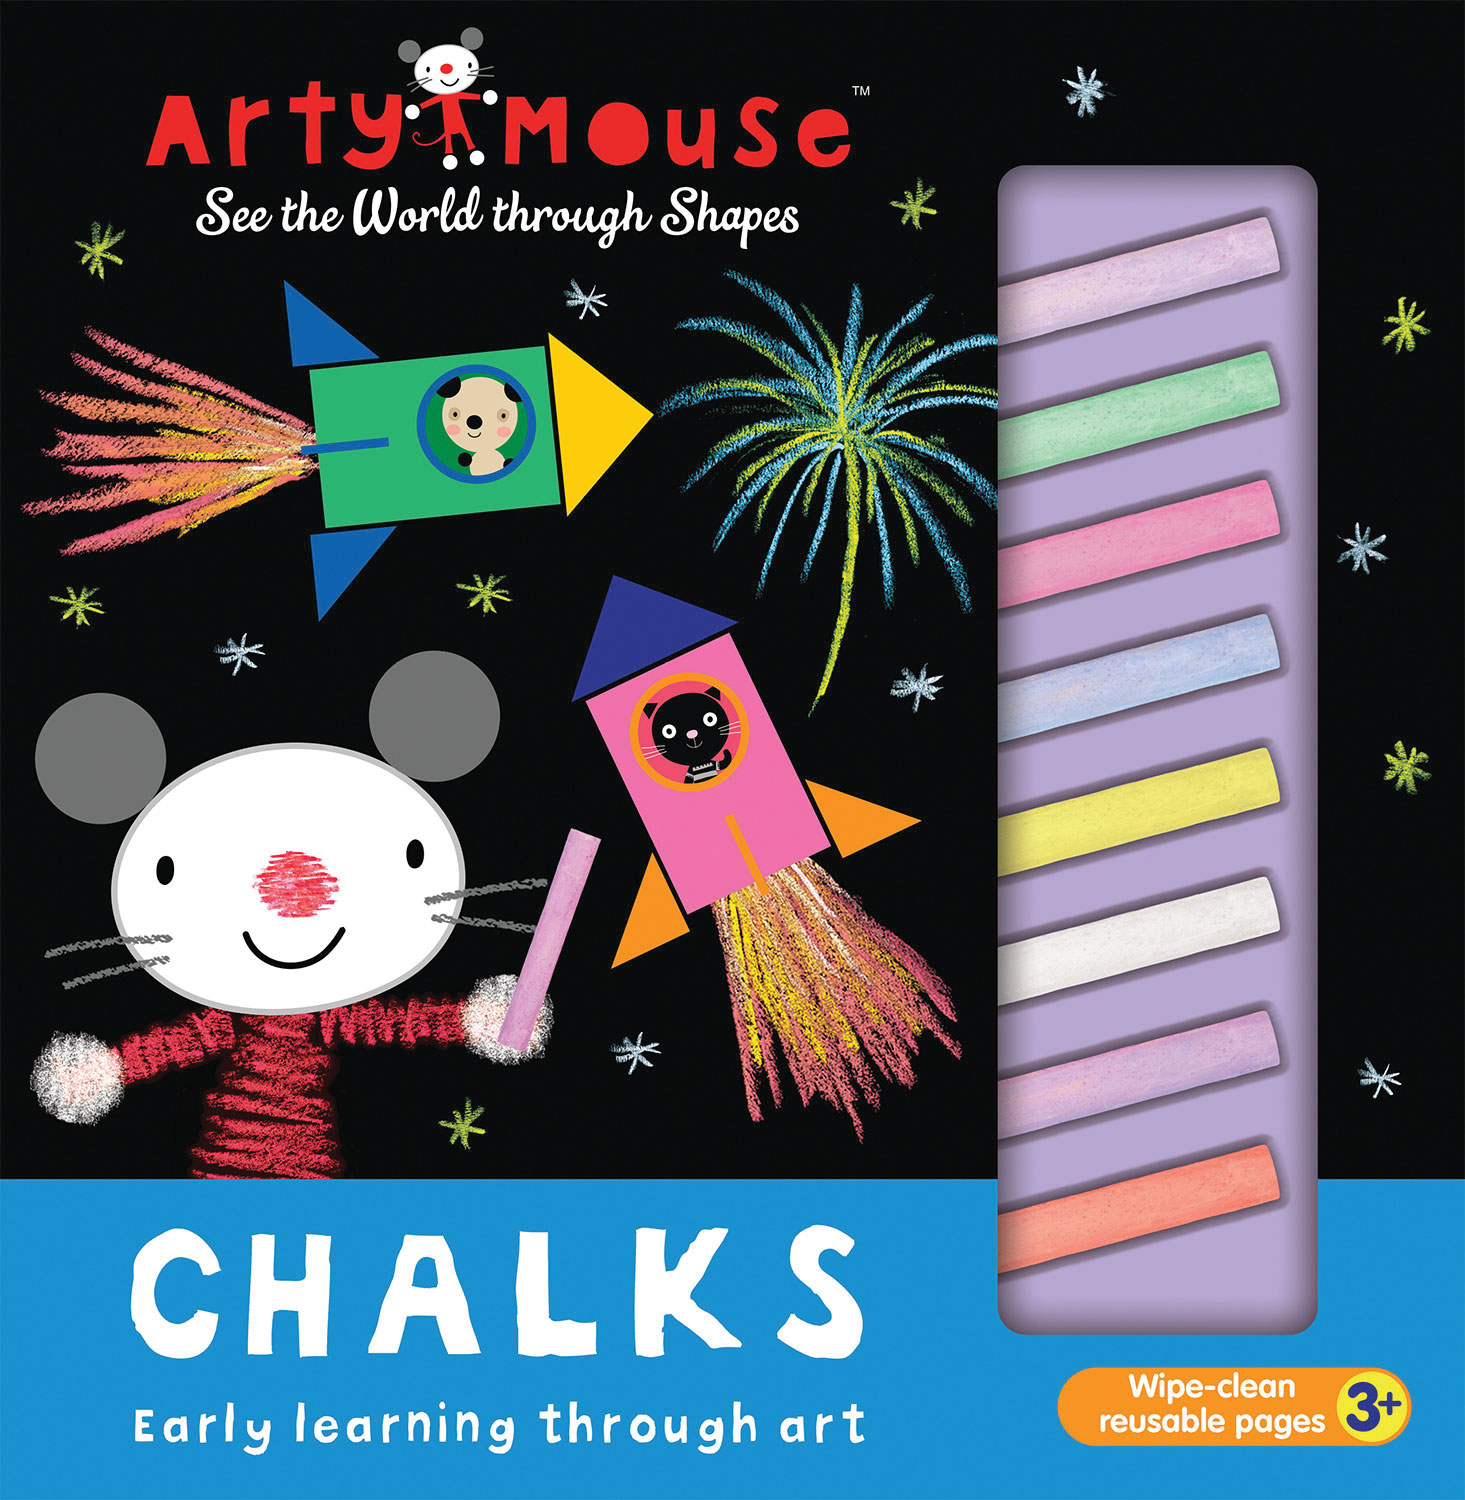 ARTY MOUSE CHALKS